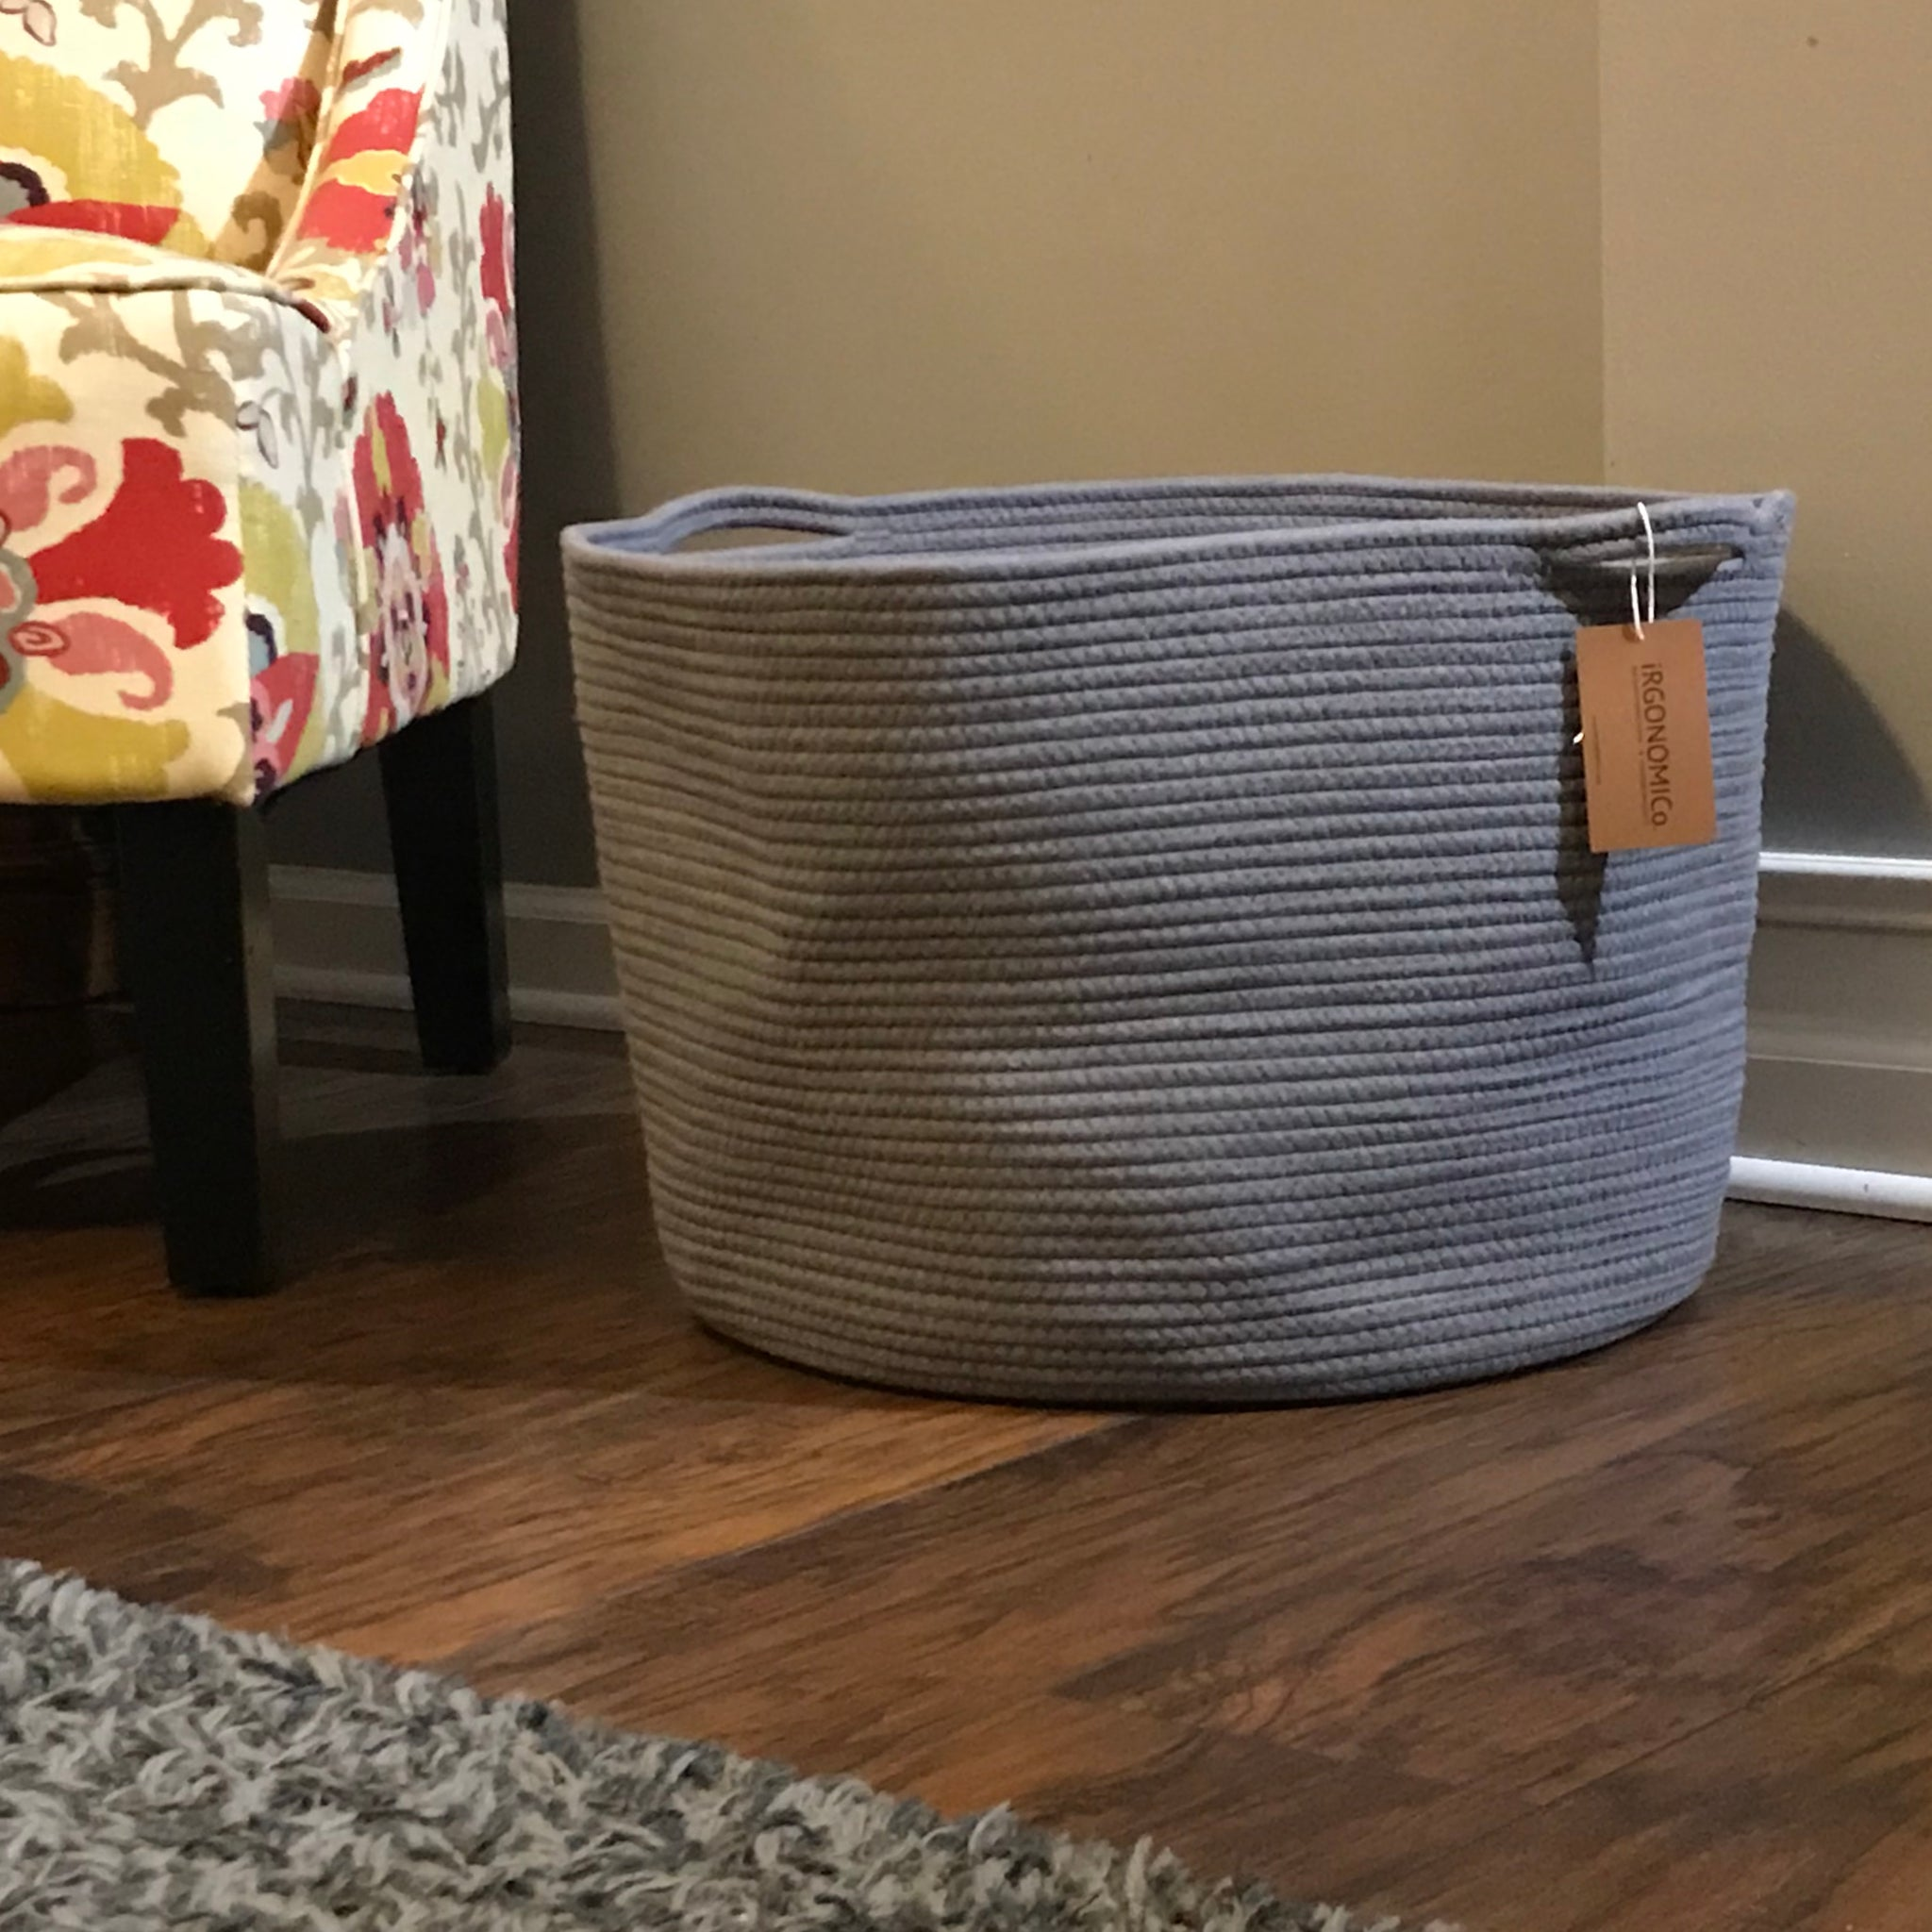 6e59c20b0089 ... Load image into Gallery viewer, Extra Large Grey Cotton Rope Storage  Baskets ...